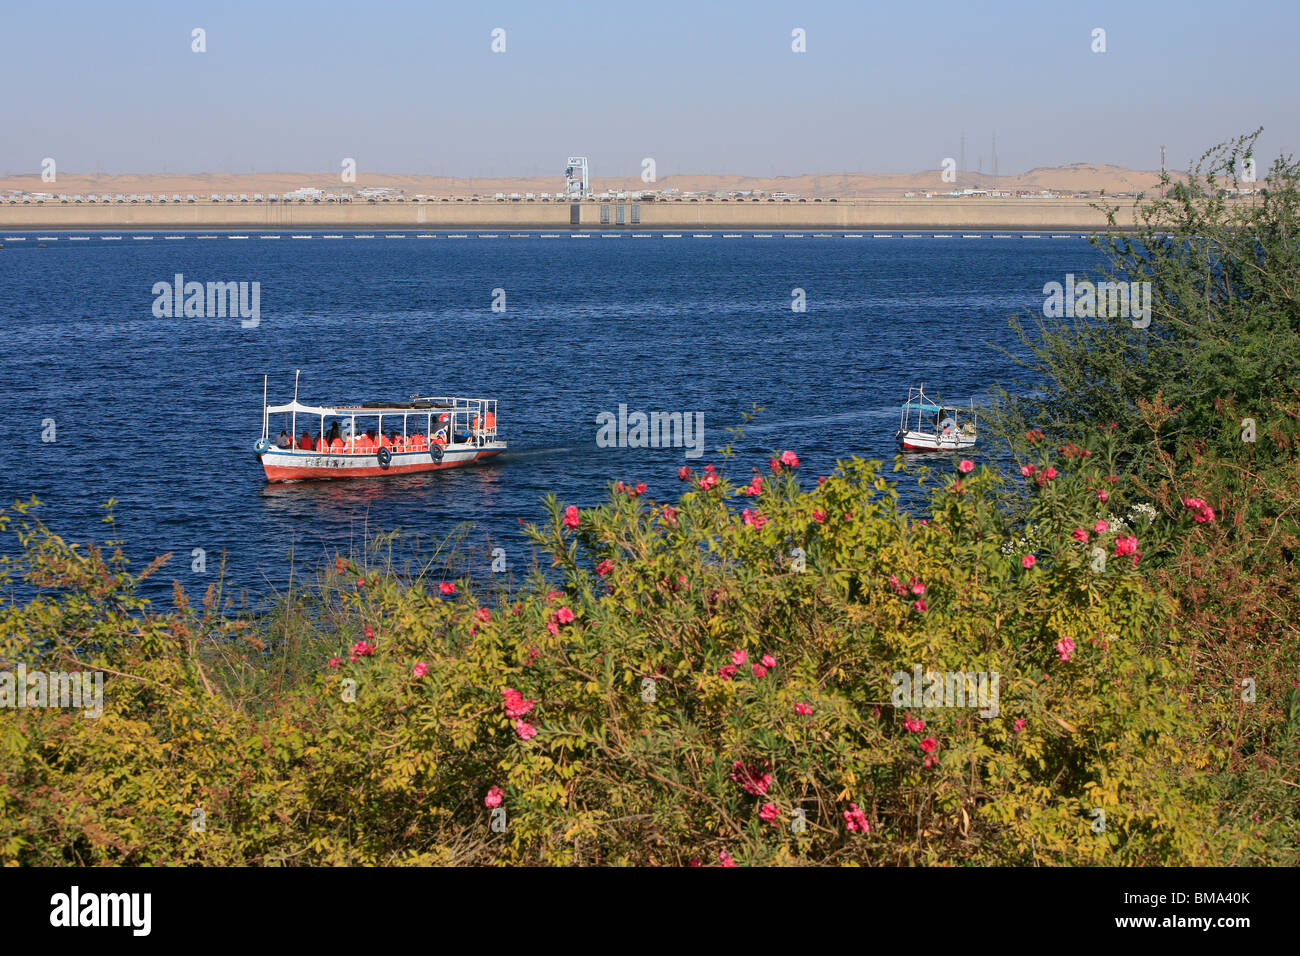 Tourist boat headed for Philae Island with the Old Aswan Dam in the background - Stock Image